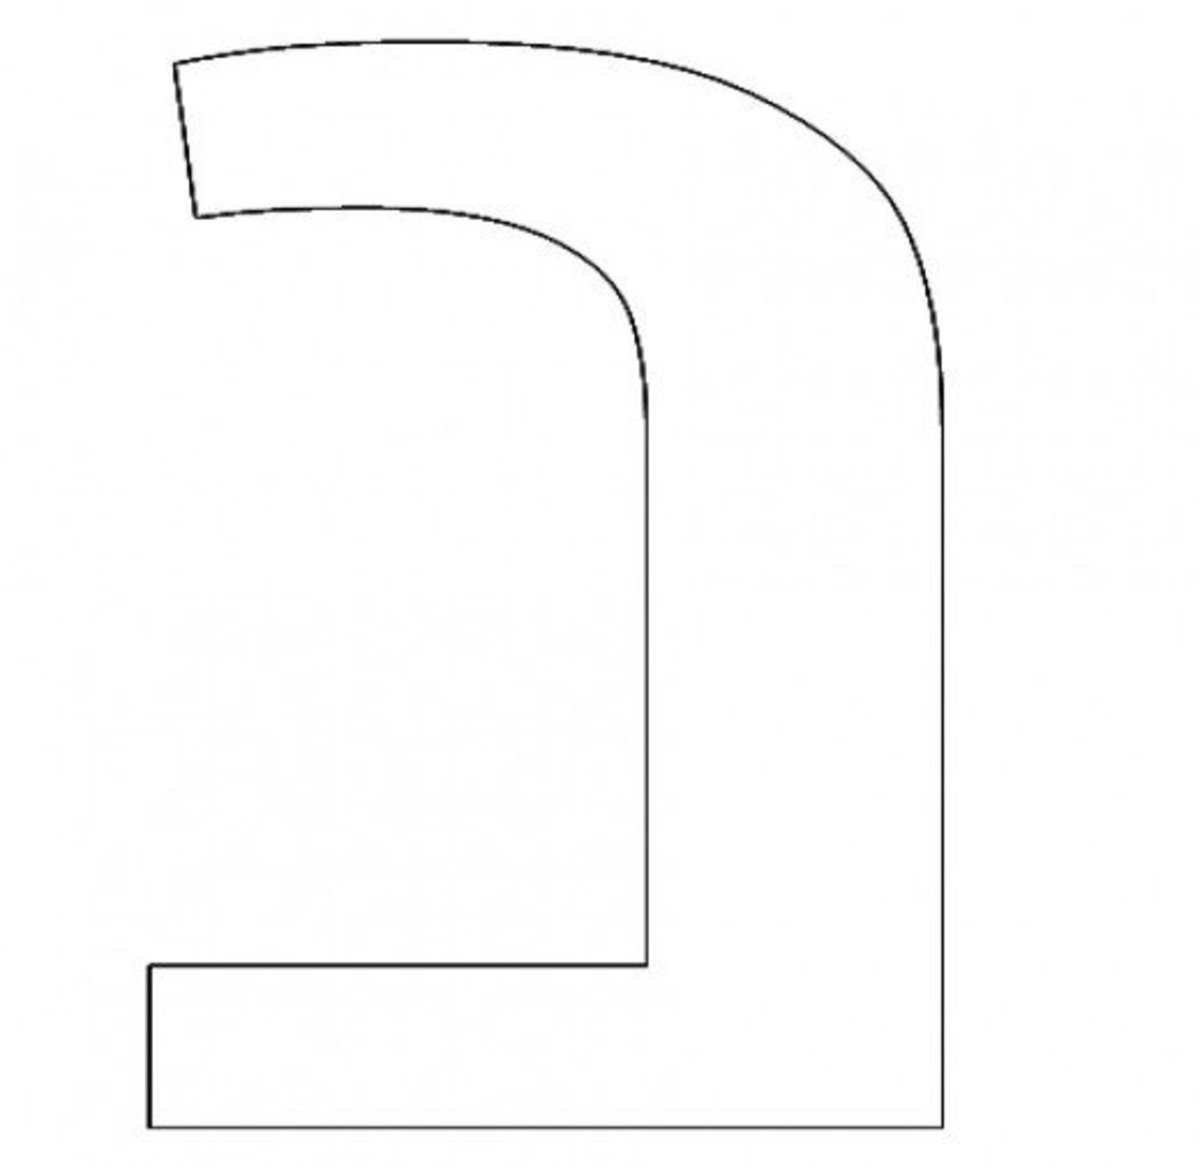 Hebrew Letter Nun Coloring Page - דף צביעה אוֹת נון